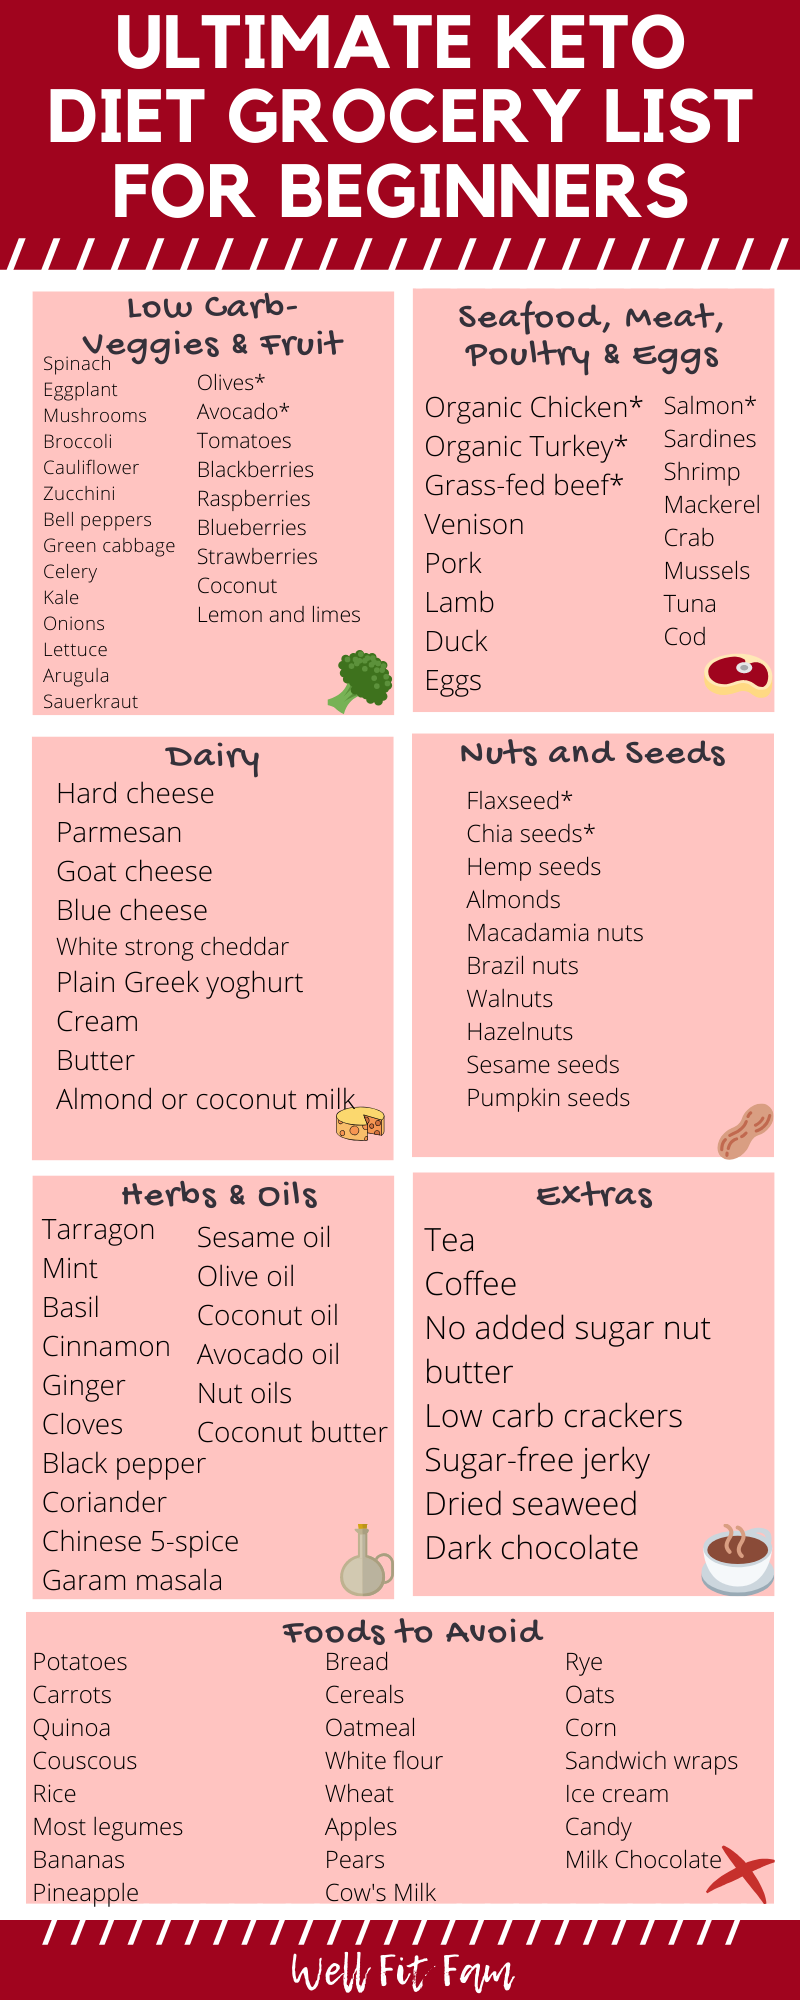 Ultimate Keto Diet Grocery List For Beginners: To Make Any Keto Recipes